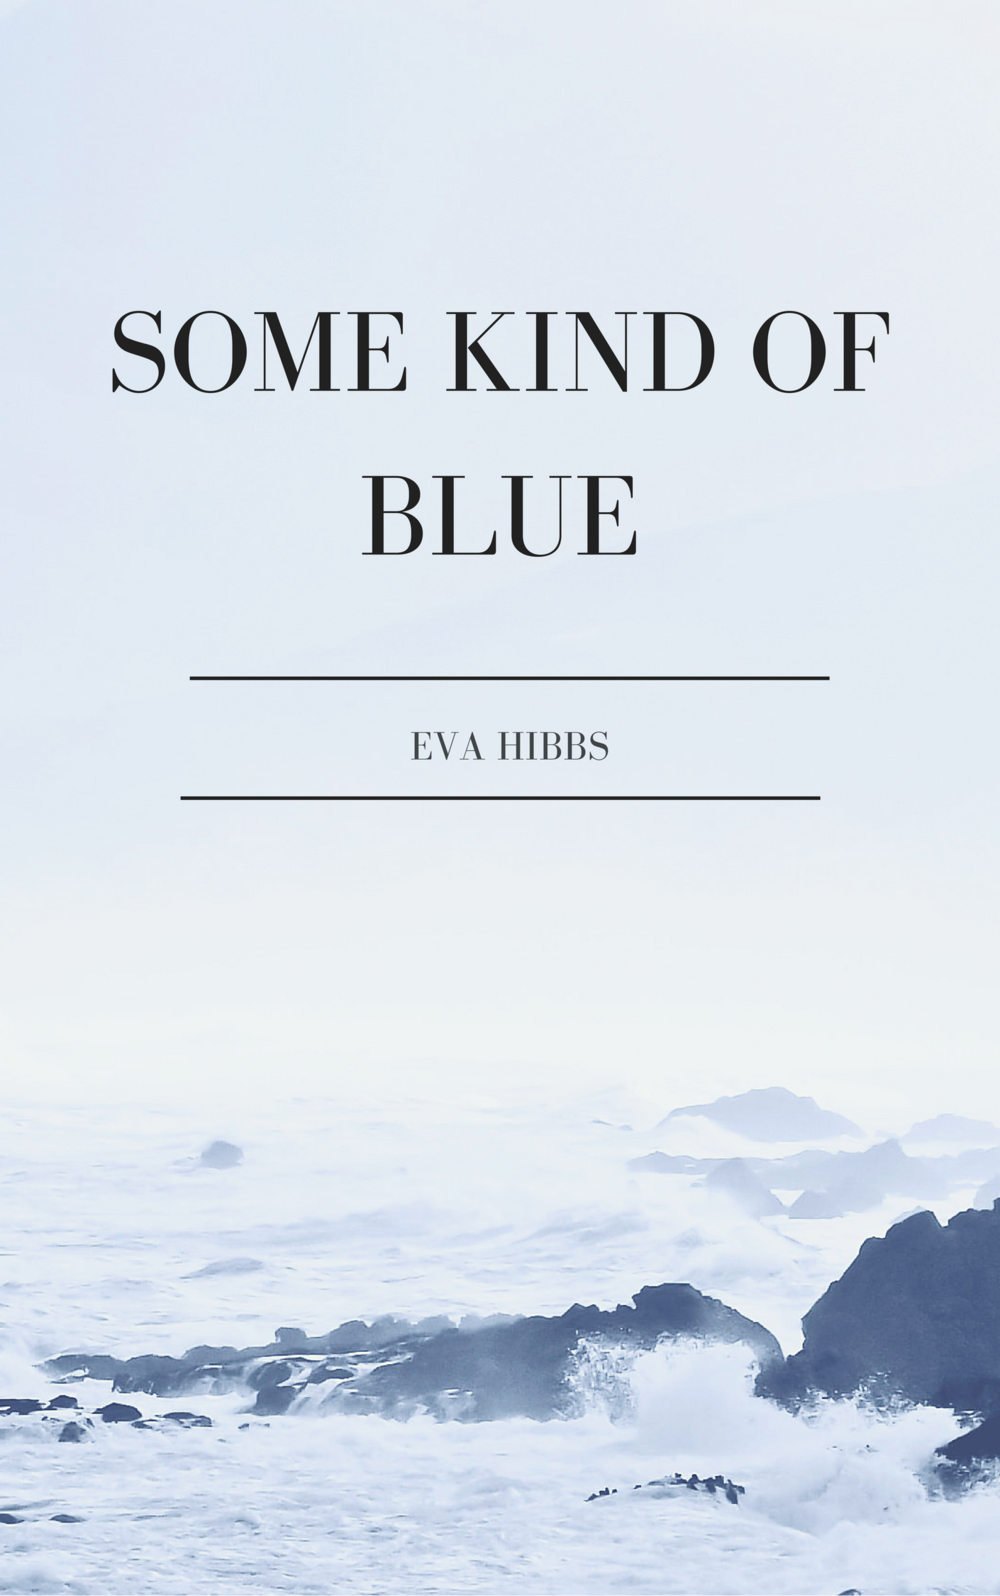 Some Kind of Blue by Eva Hibbs